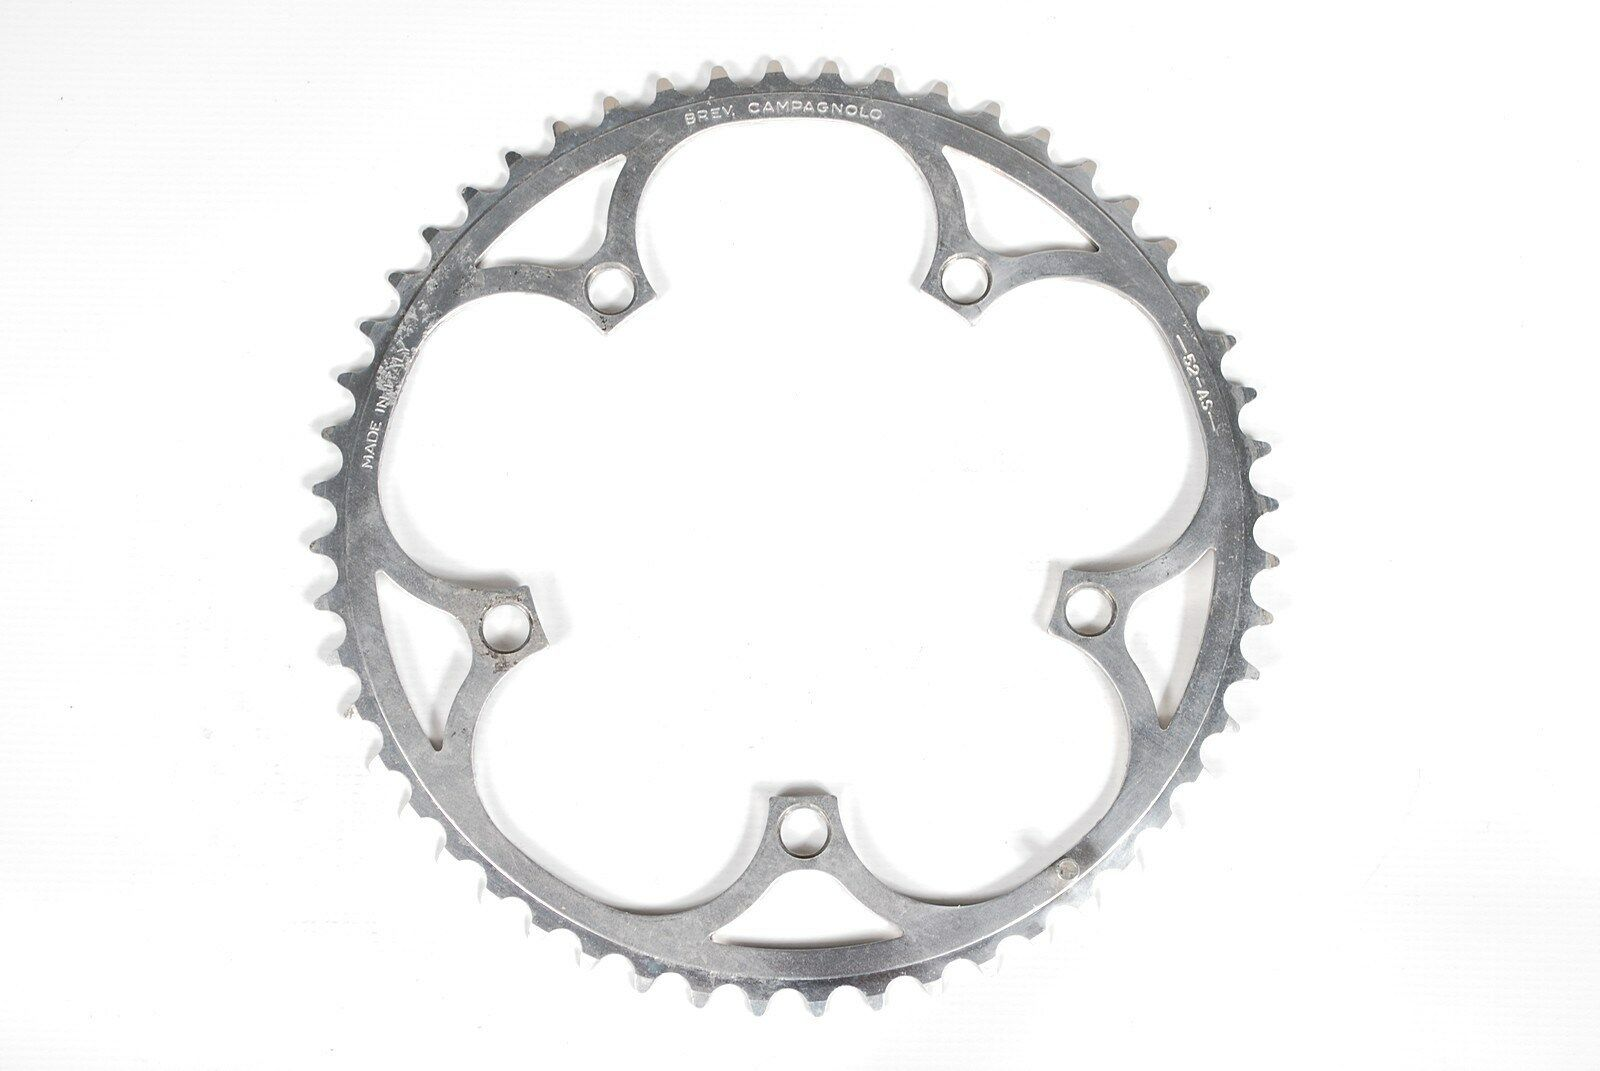 Campagnolo C-Record Bicycle Chainring 52T AS 135 BCD Crankset Campagnolo Parts